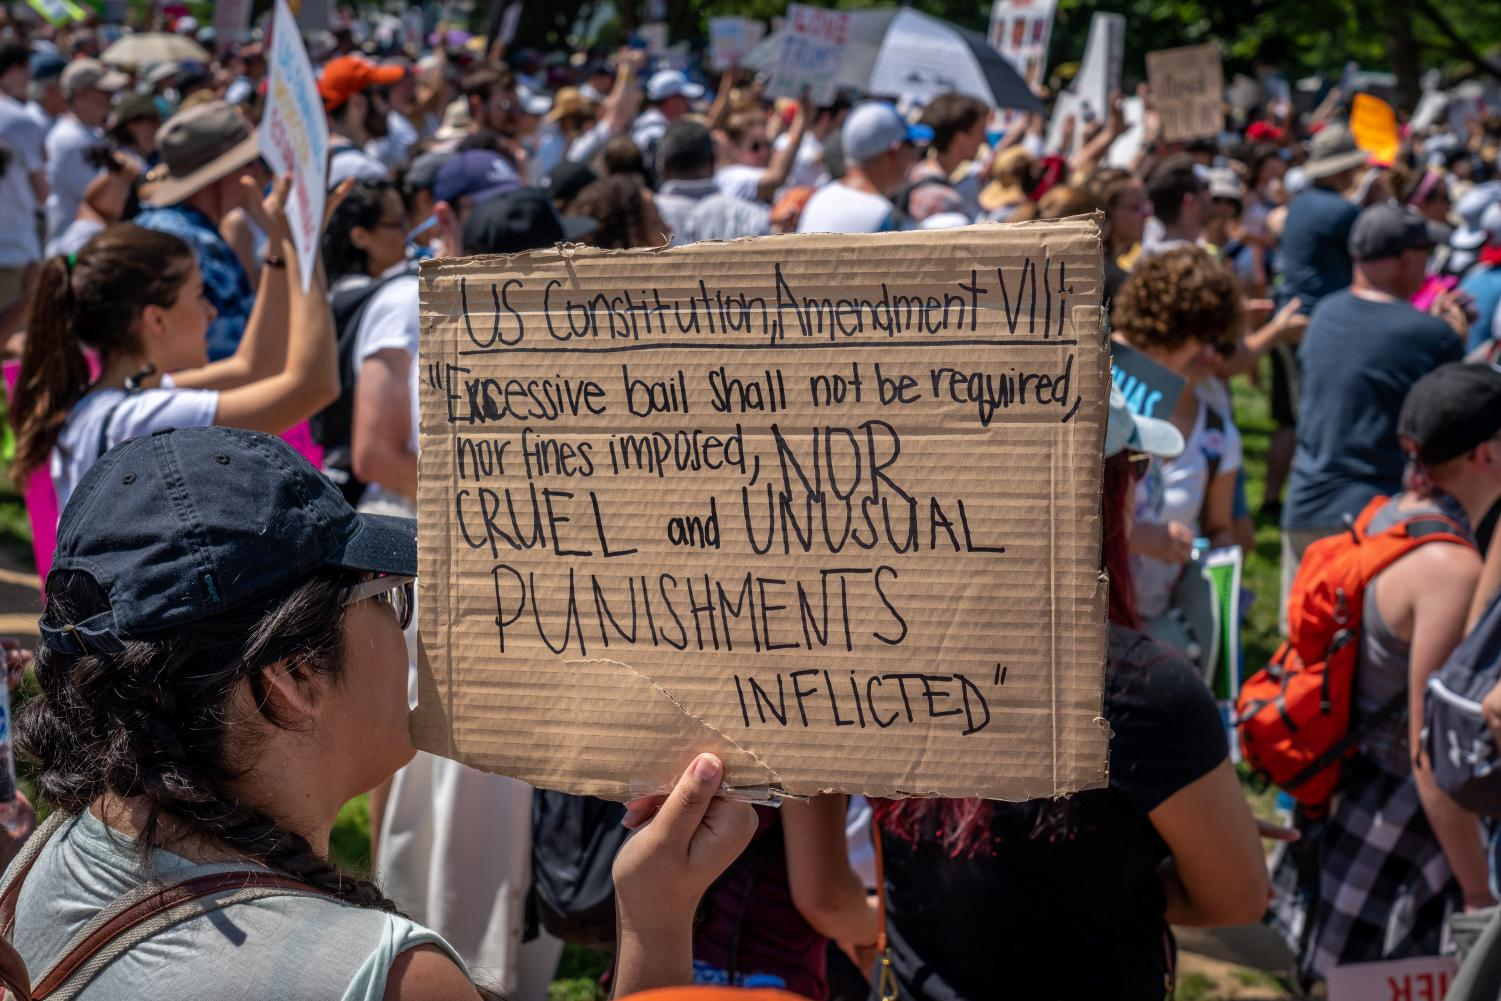 A protestor carries a sign quoting the 8th Amendment. (Courtesy Flickr)